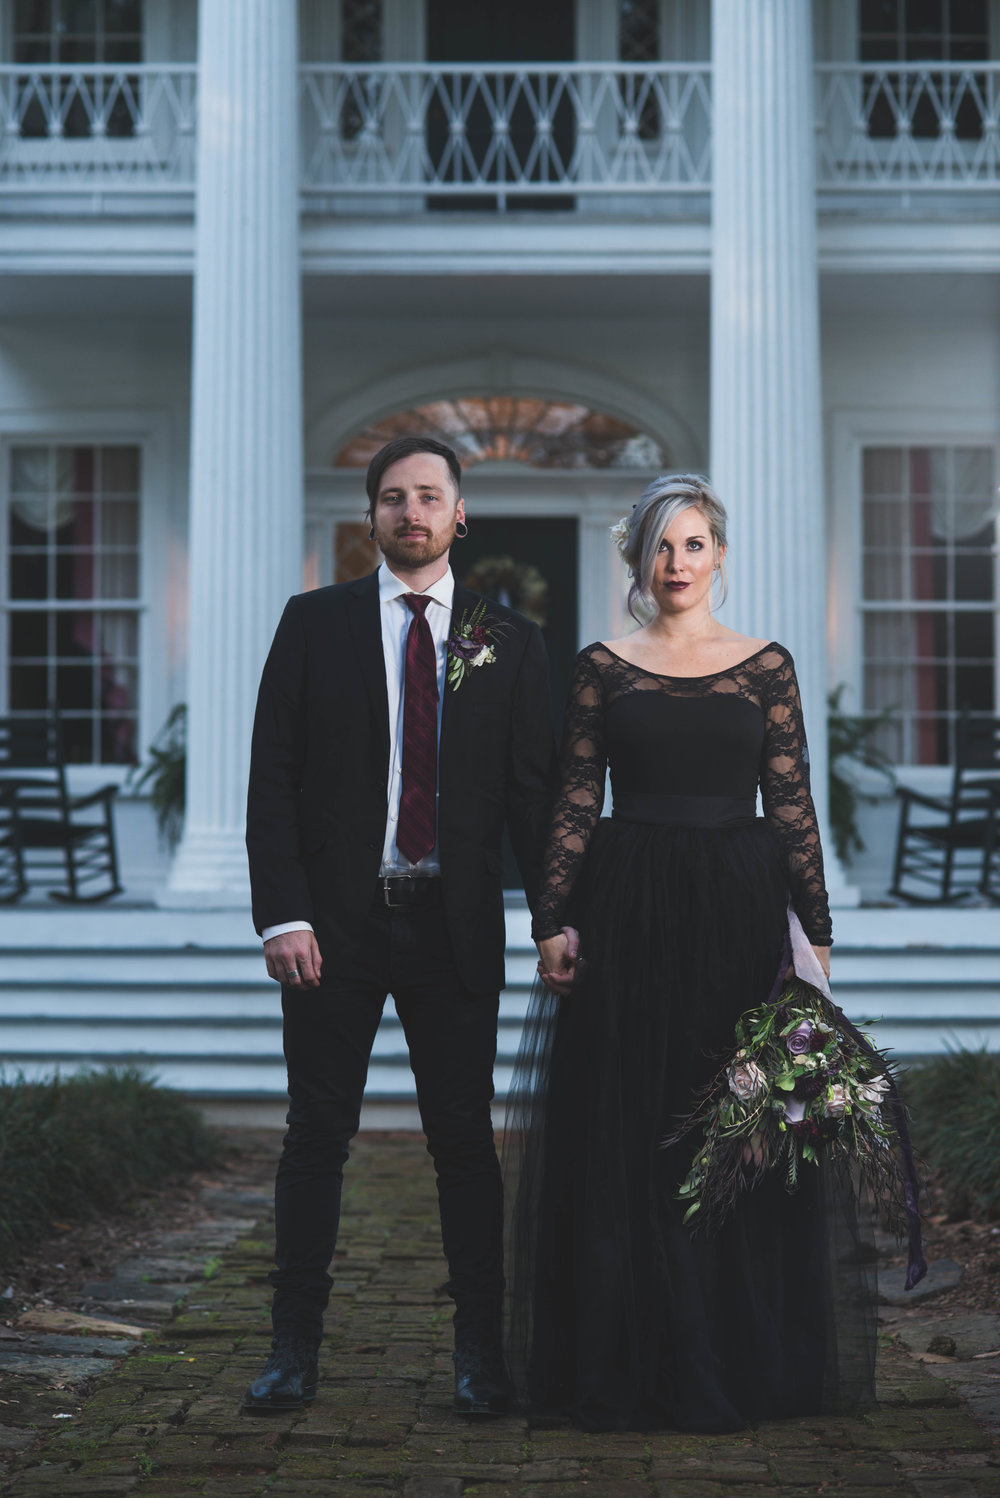 Bride and Groom Formal Picture at a Halloween Inspired Wedding at Nutwood Plantation in LaGrange GA